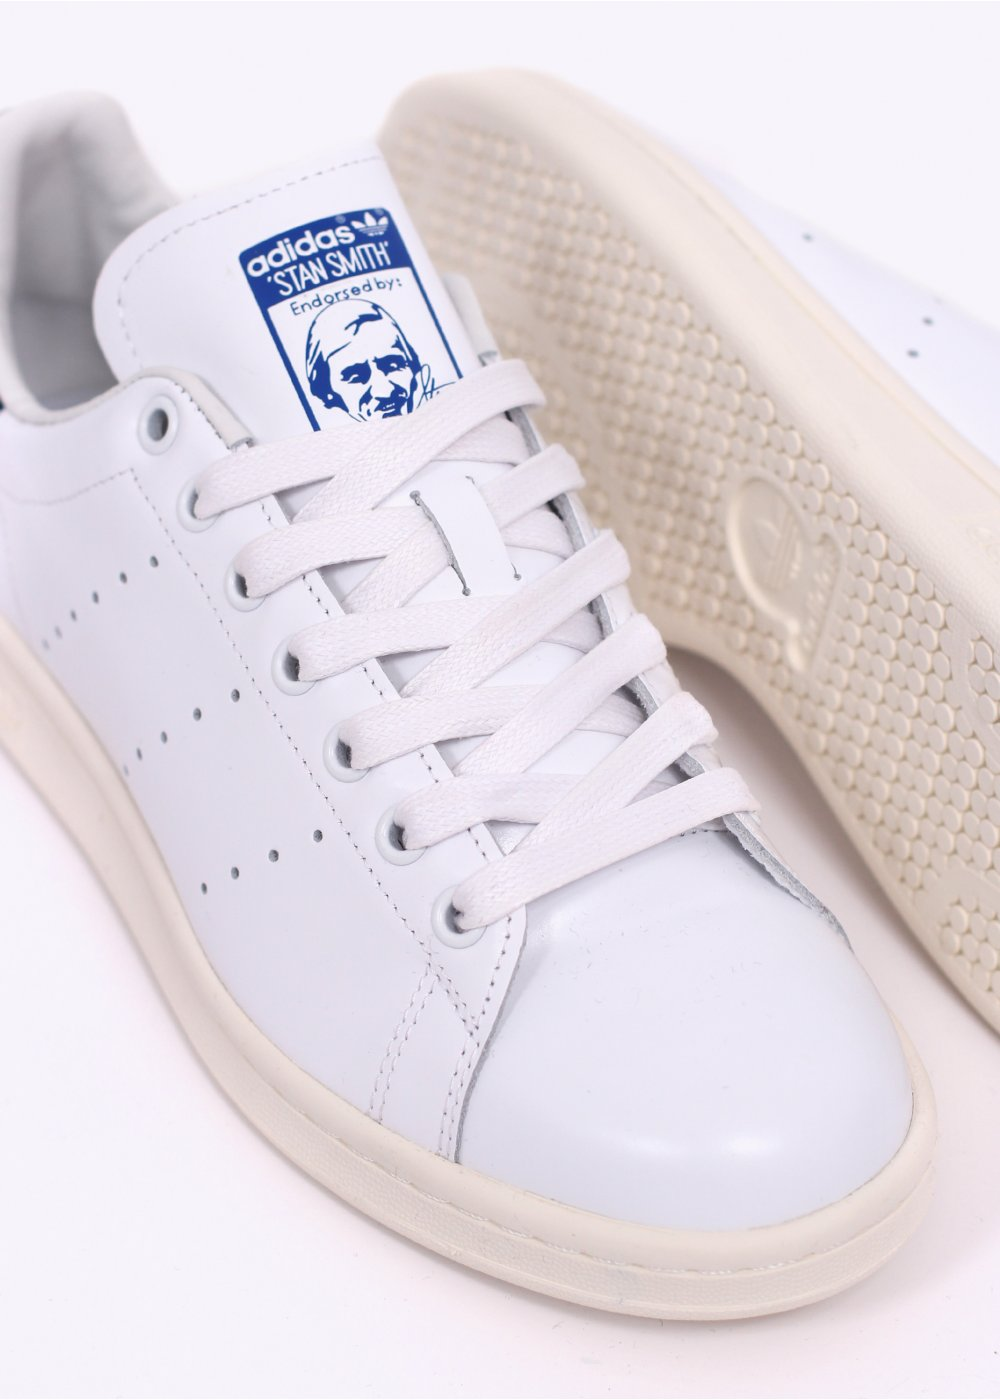 timeless design d8547 aa0be adidas Originals Footwear Stan Smith Trainers - White / Navy